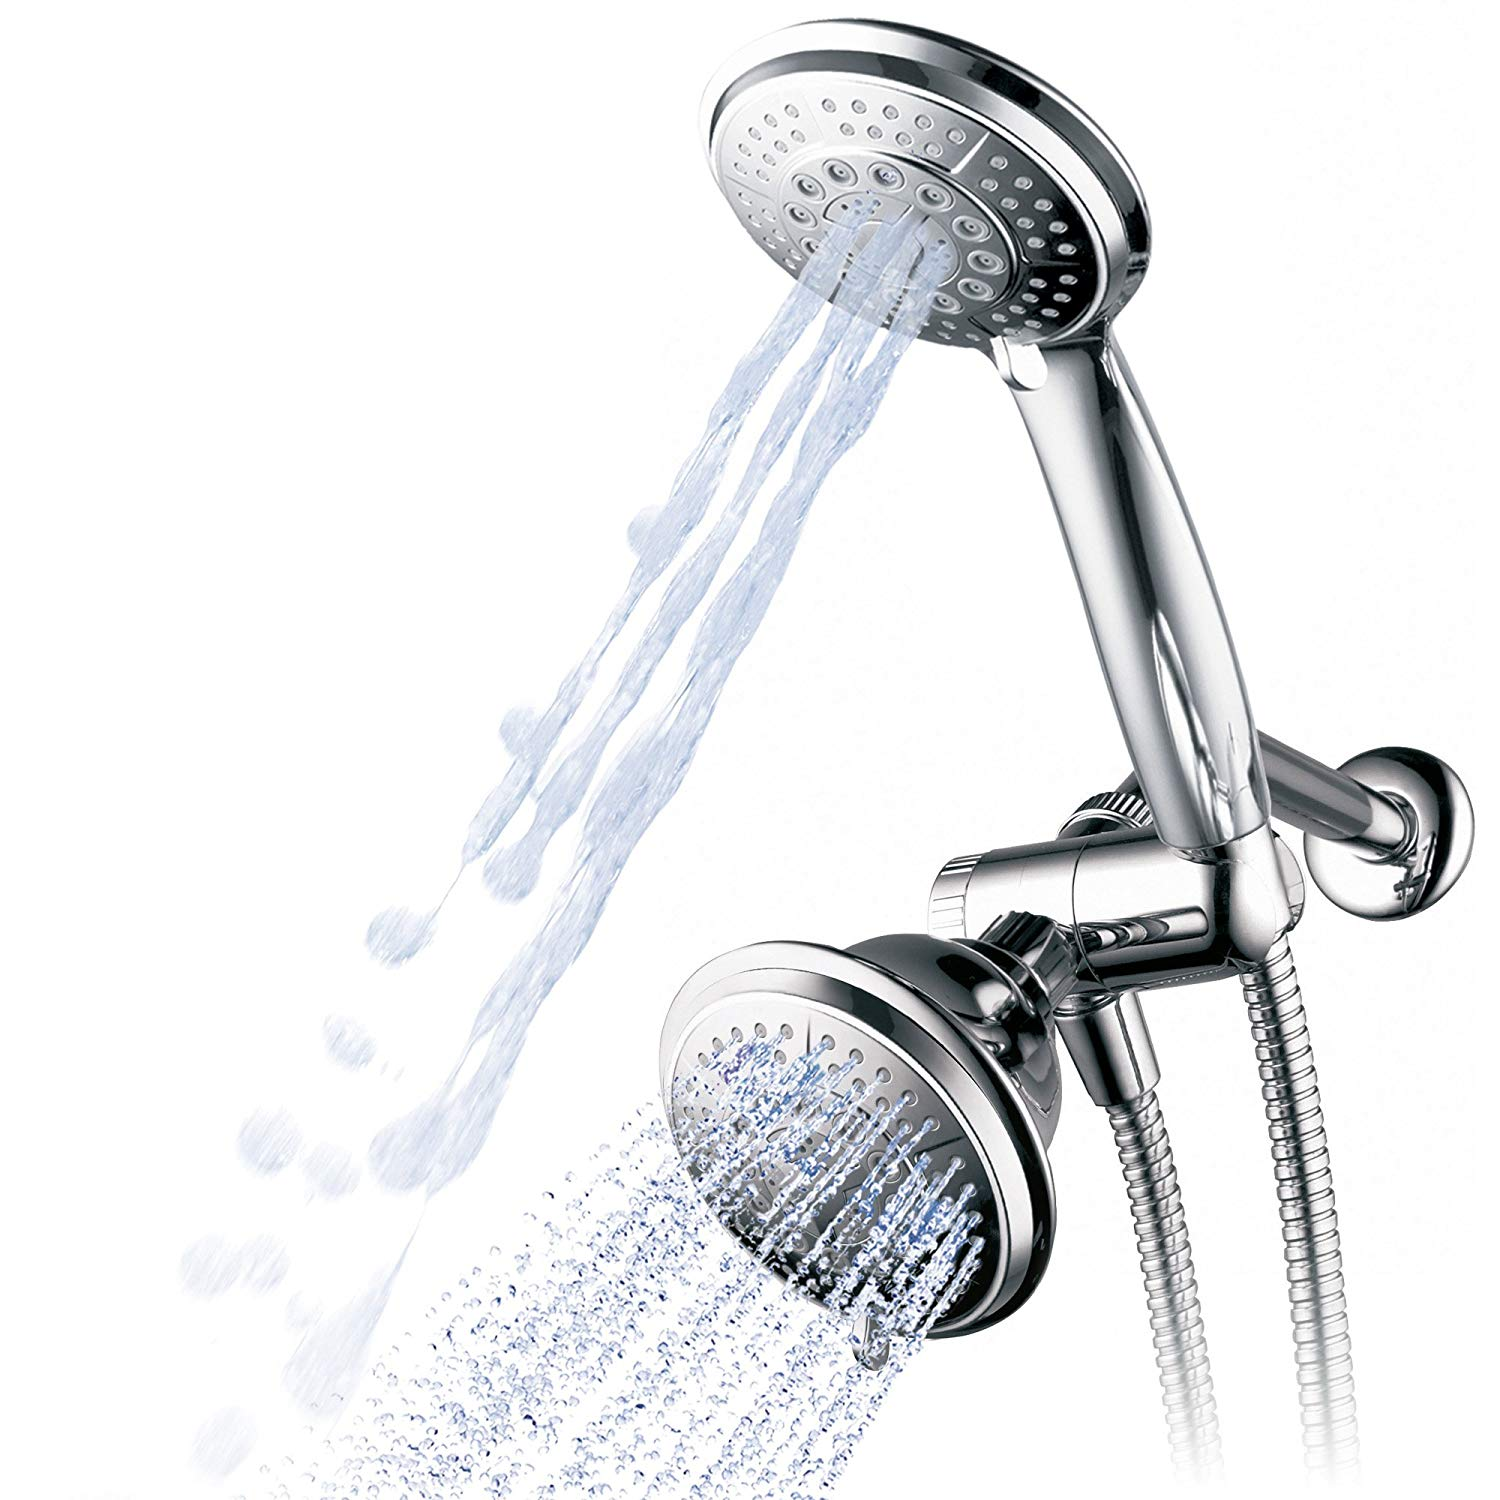 Details About Hydroluxe 1433 Handheld Showerhead And Rain Shower Combo High Pressure 24 4 2